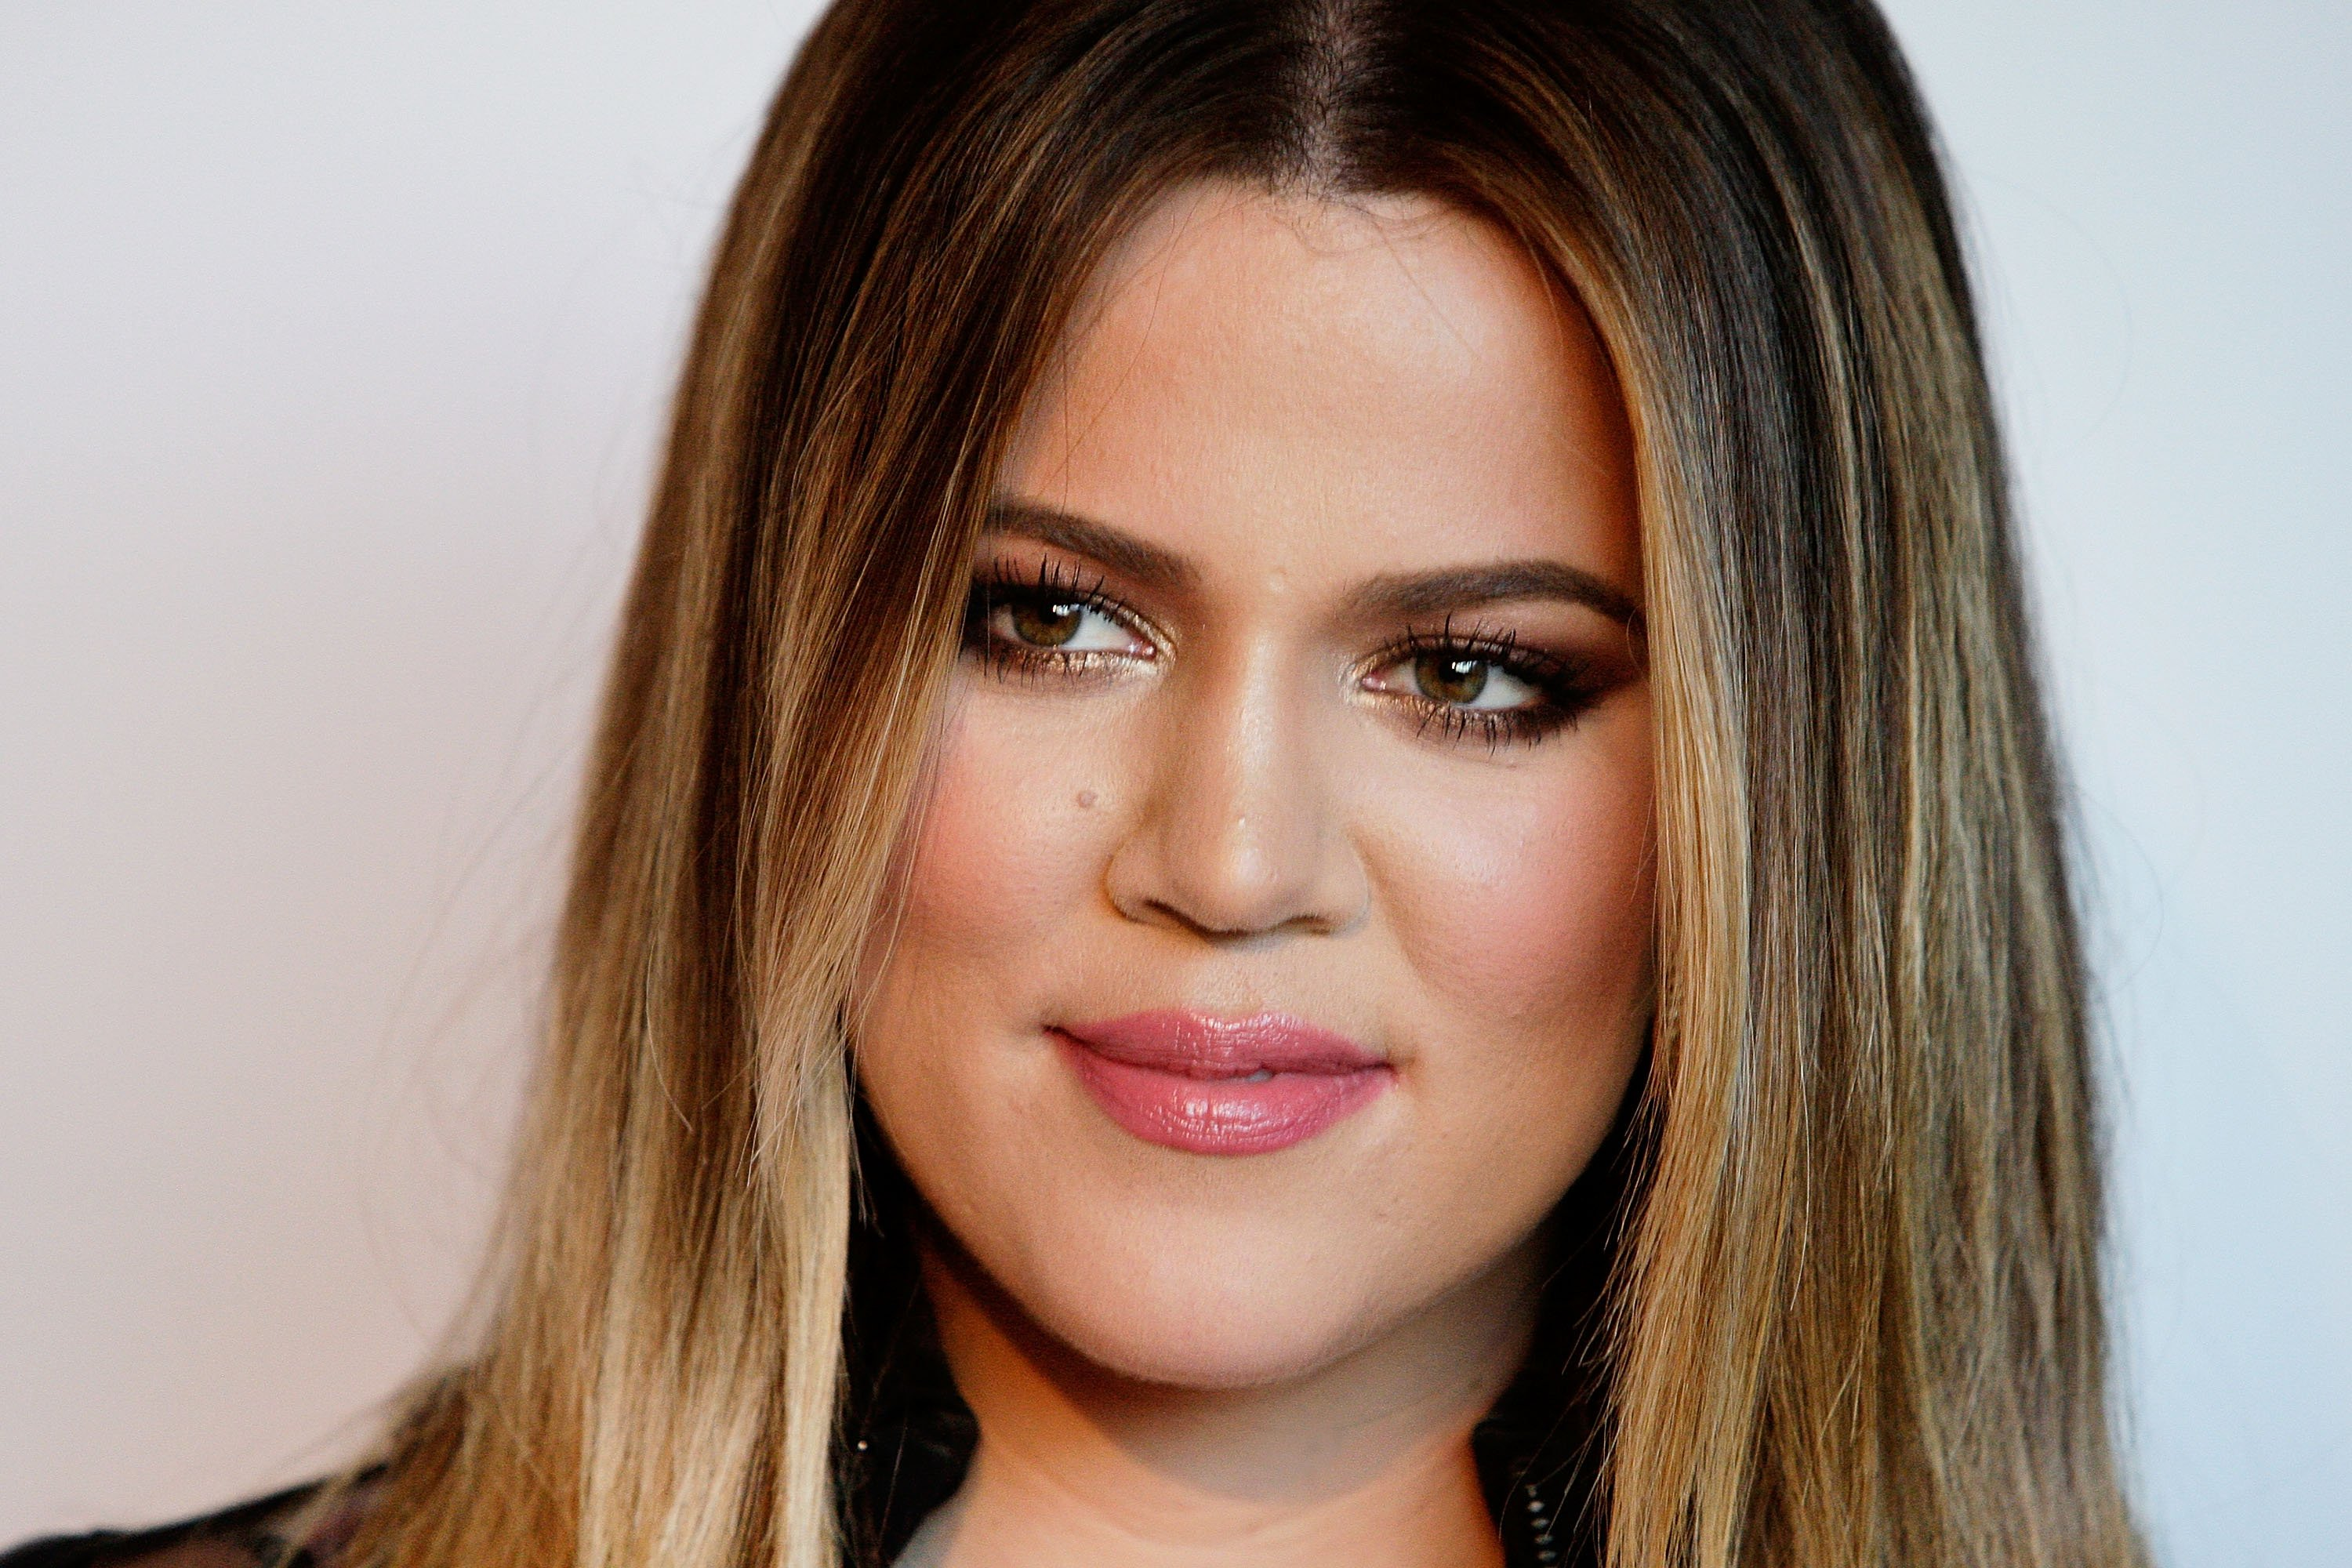 Khloé Kardashian pictured at the Kardashian Kollection cocktail party on November 19, 2013 in Sydney, Australia. | Source: Getty Images